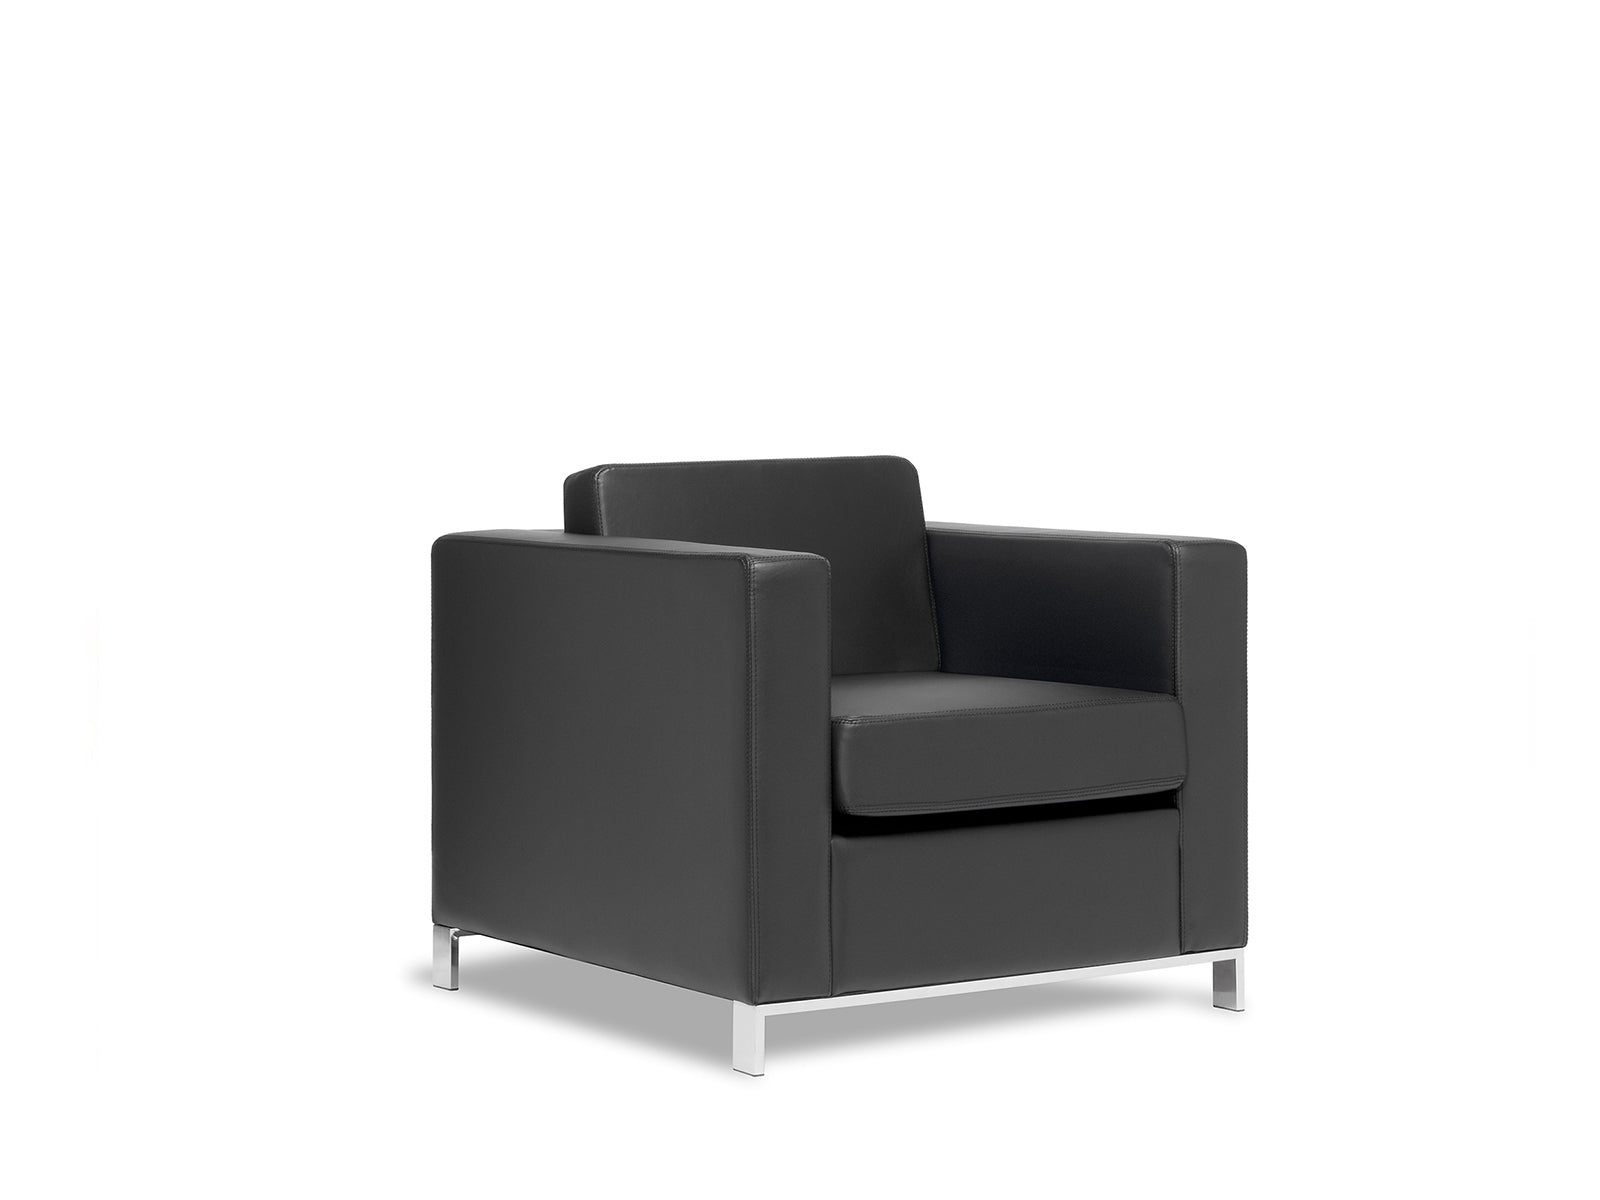 Carlo 1 Seater- Workspace Furniture Home and Office Soft Seating and Ottomans